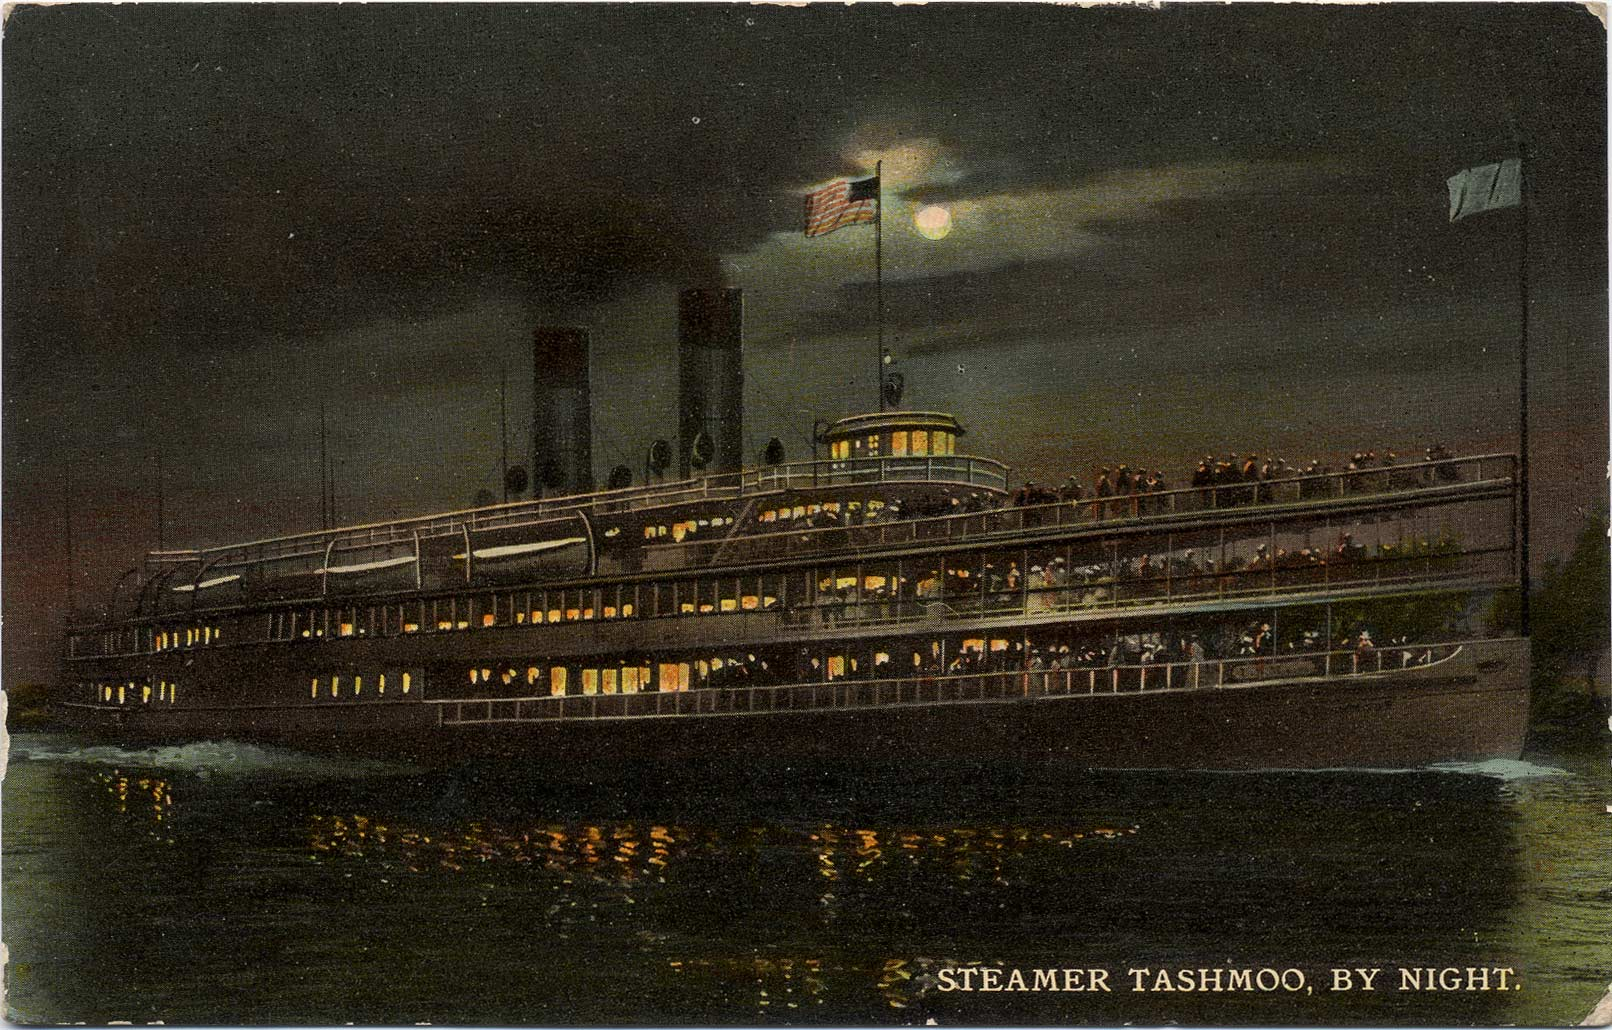 Steamer Tashmoo, by Night